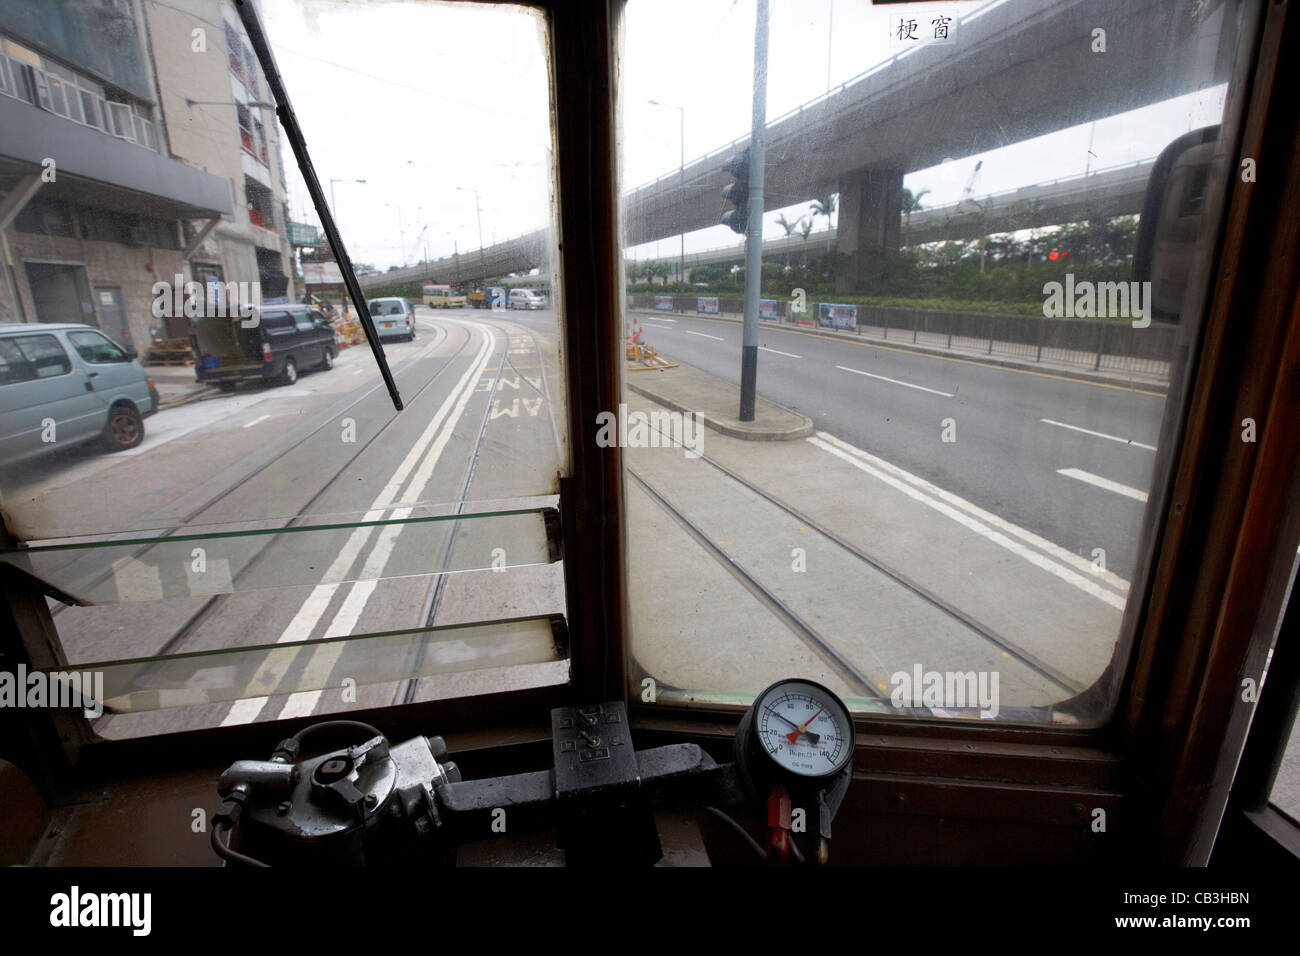 looking out of rear window of old hong kong tram on hong kong island hksar china - Stock Image